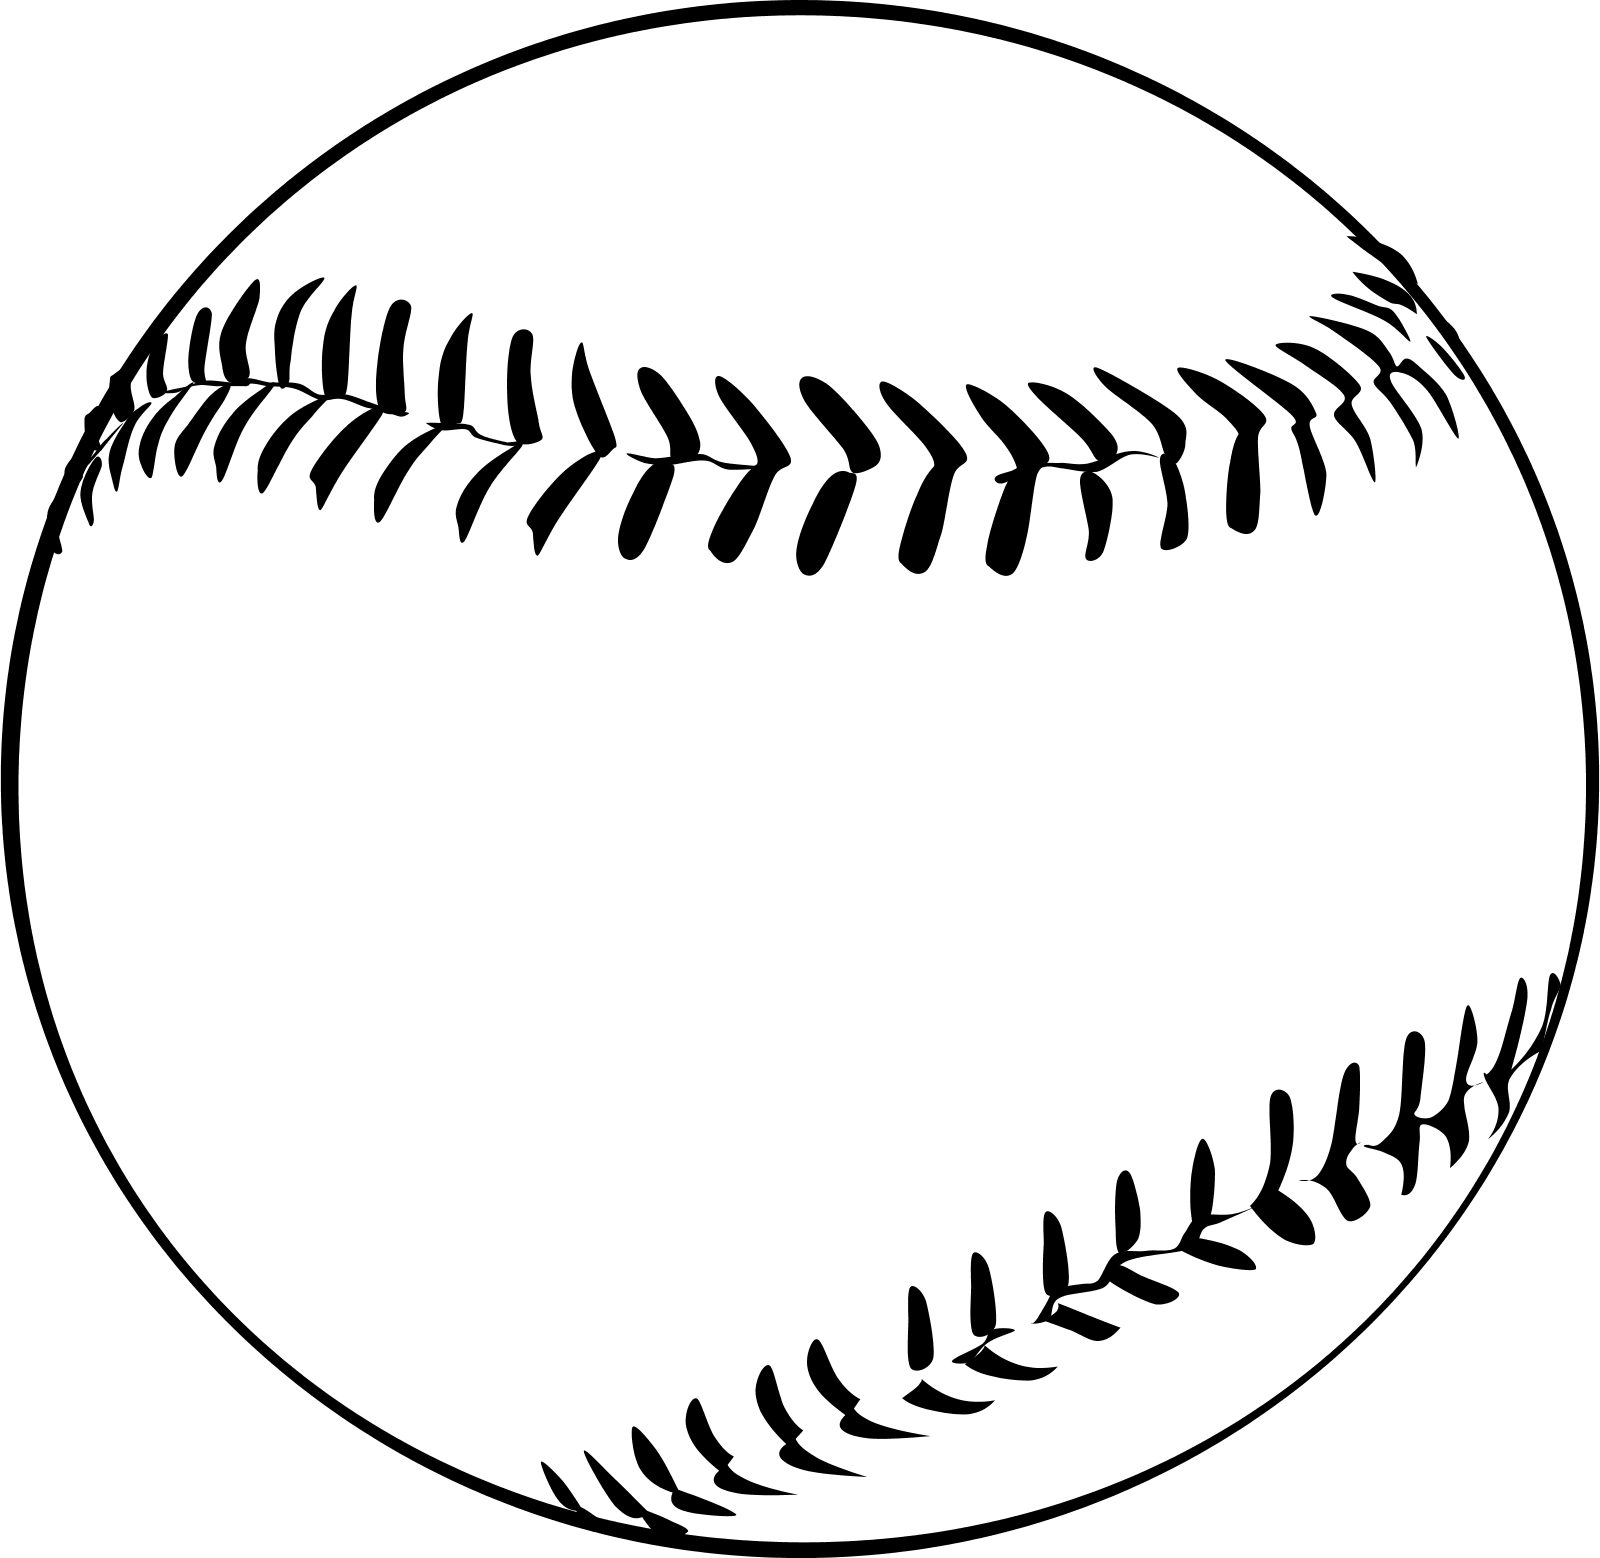 Baseball stitches clipart transparent vector library stock Baseball stitches clipart black and white - Cliparts Suggest ... vector library stock